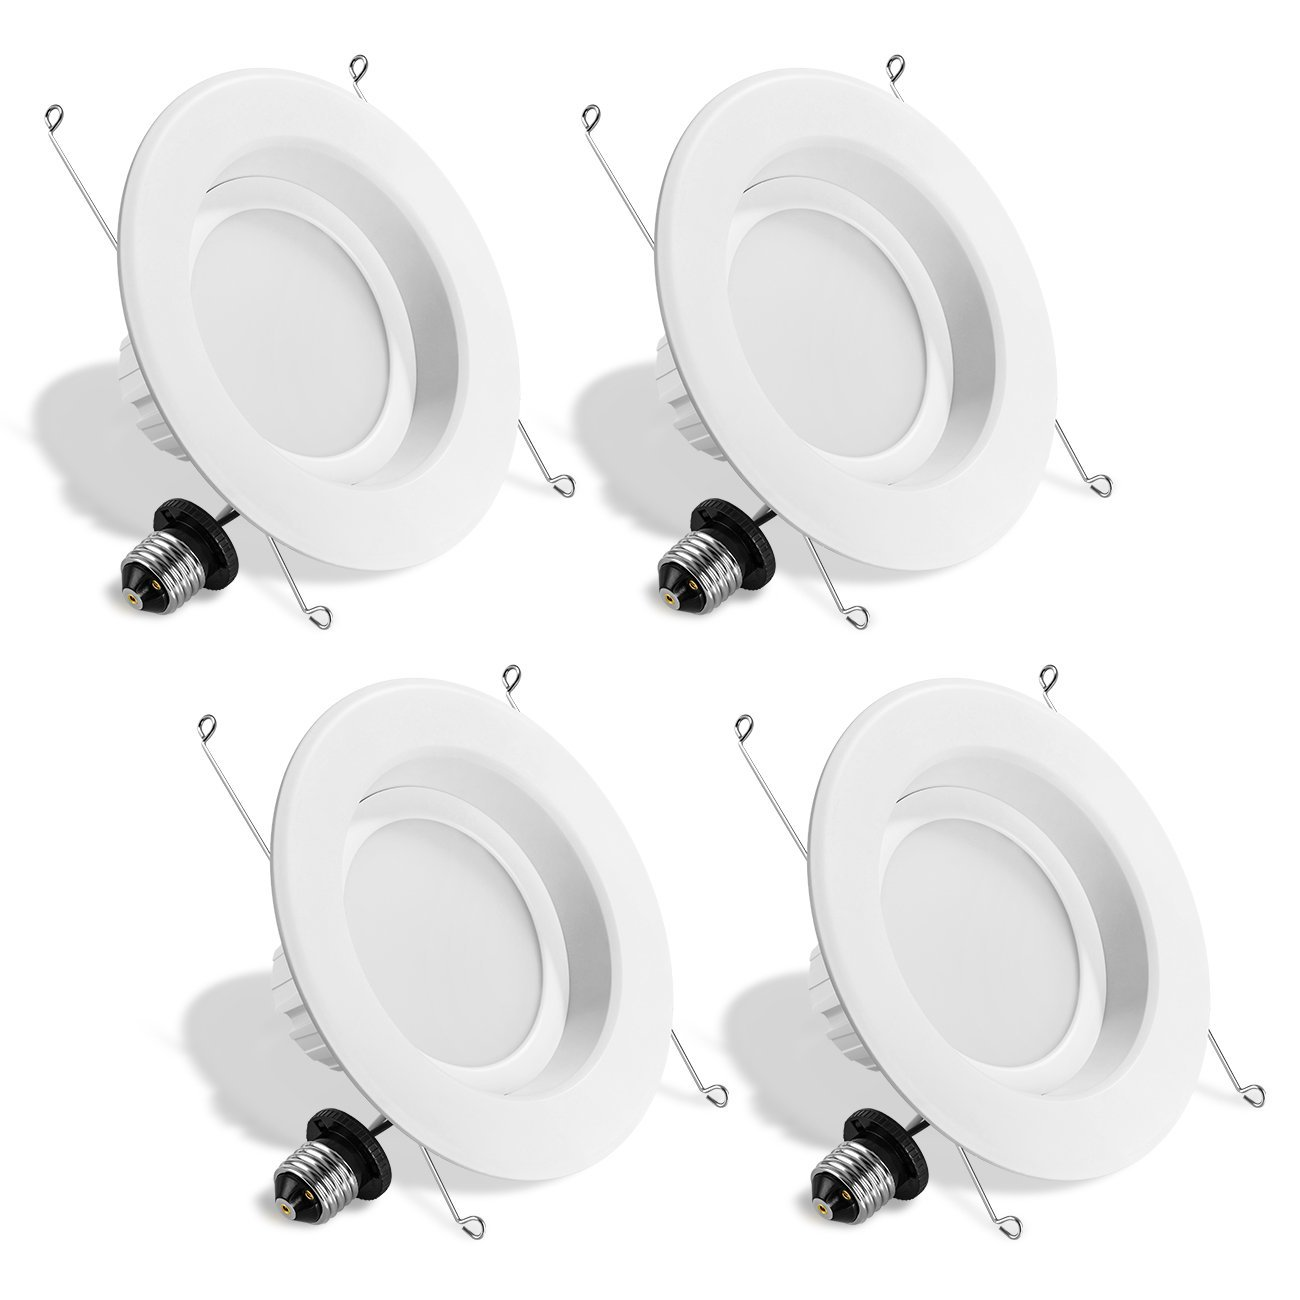 LVWIT LED 6'' Retrofit Dimmable Downlight 4000K Neutral White 1100 Lumens, 100W Equivalent 5 Year Warranty(4 Pack) by LVWIT (Image #1)